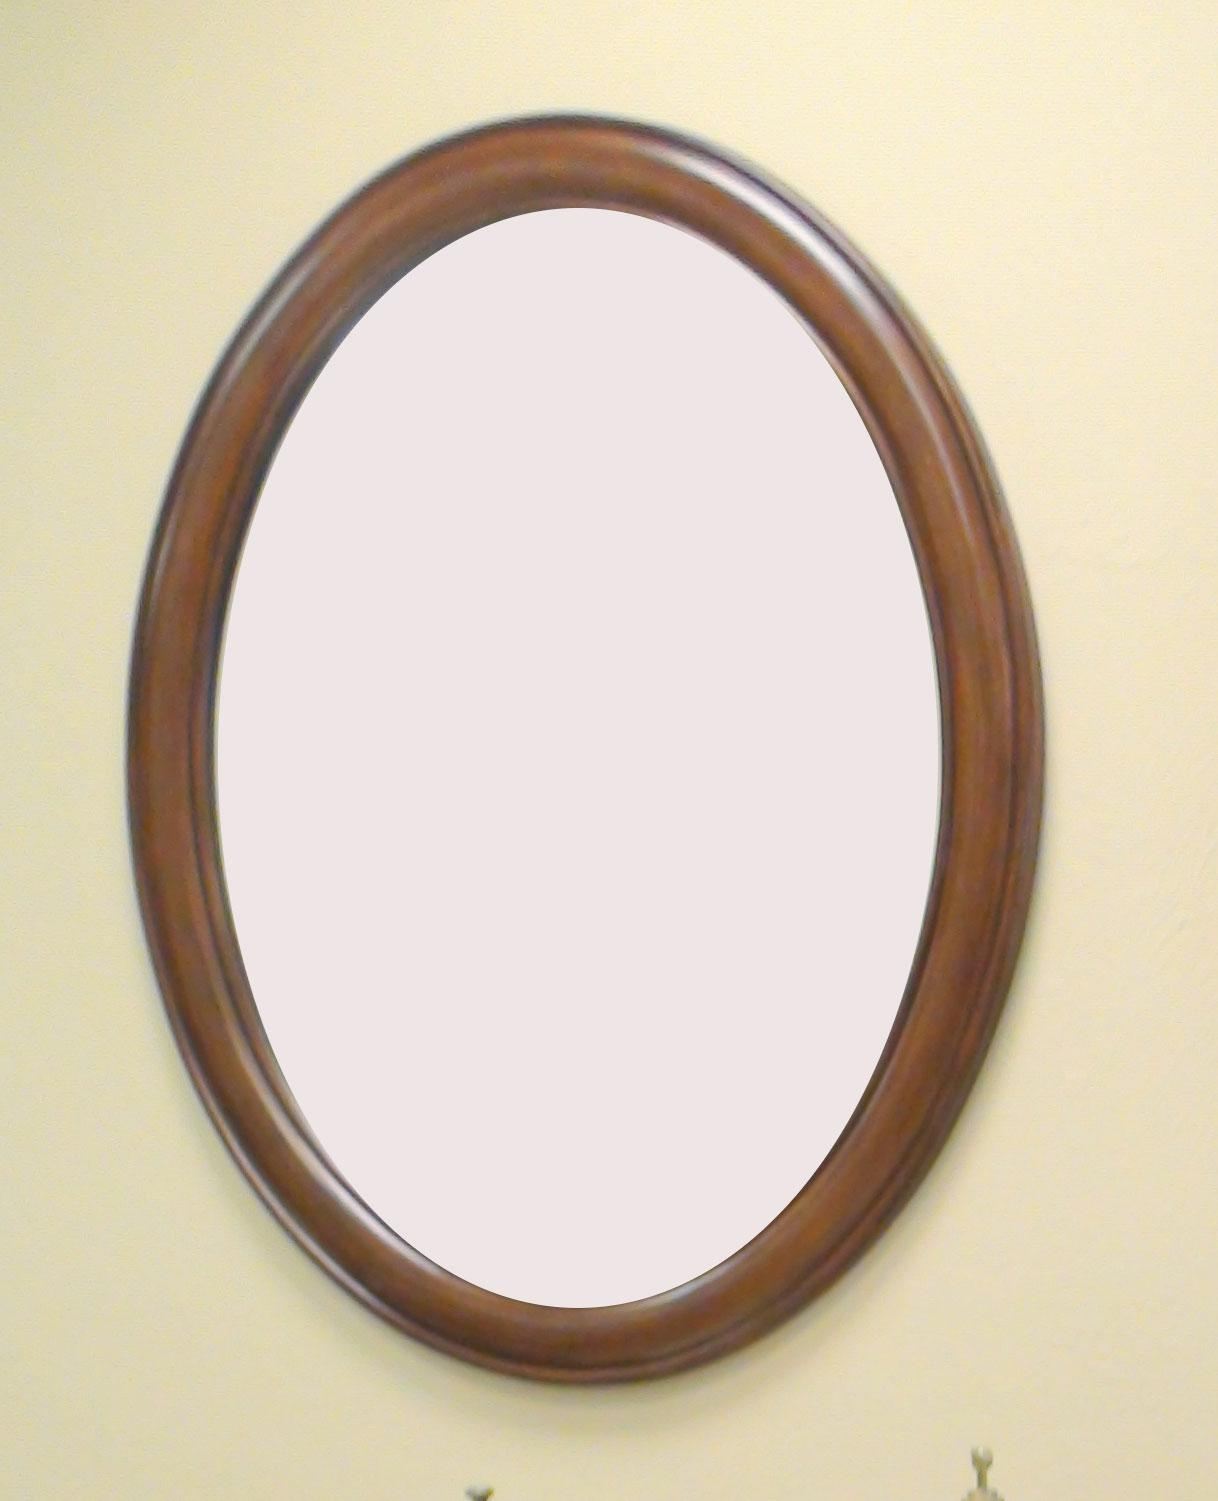 Bathroom Ideas: Wooden Oval Home Depot Bathroom Mirrors On Cream With Regard To Oval Cream Mirror (Image 2 of 20)